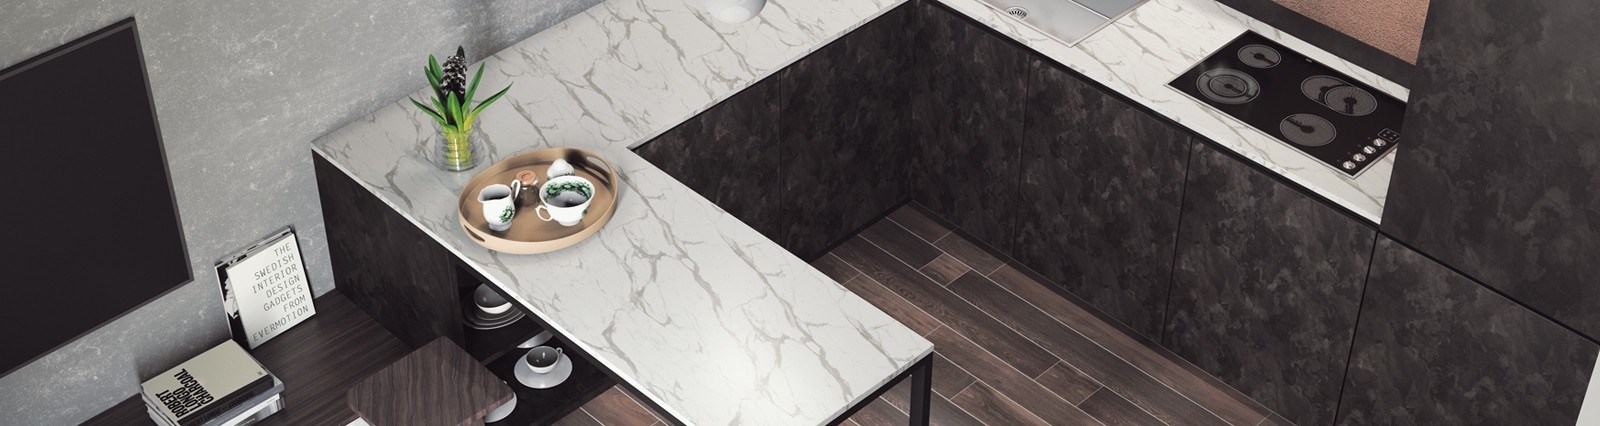 Stratus - Kitchen Surface Solutions